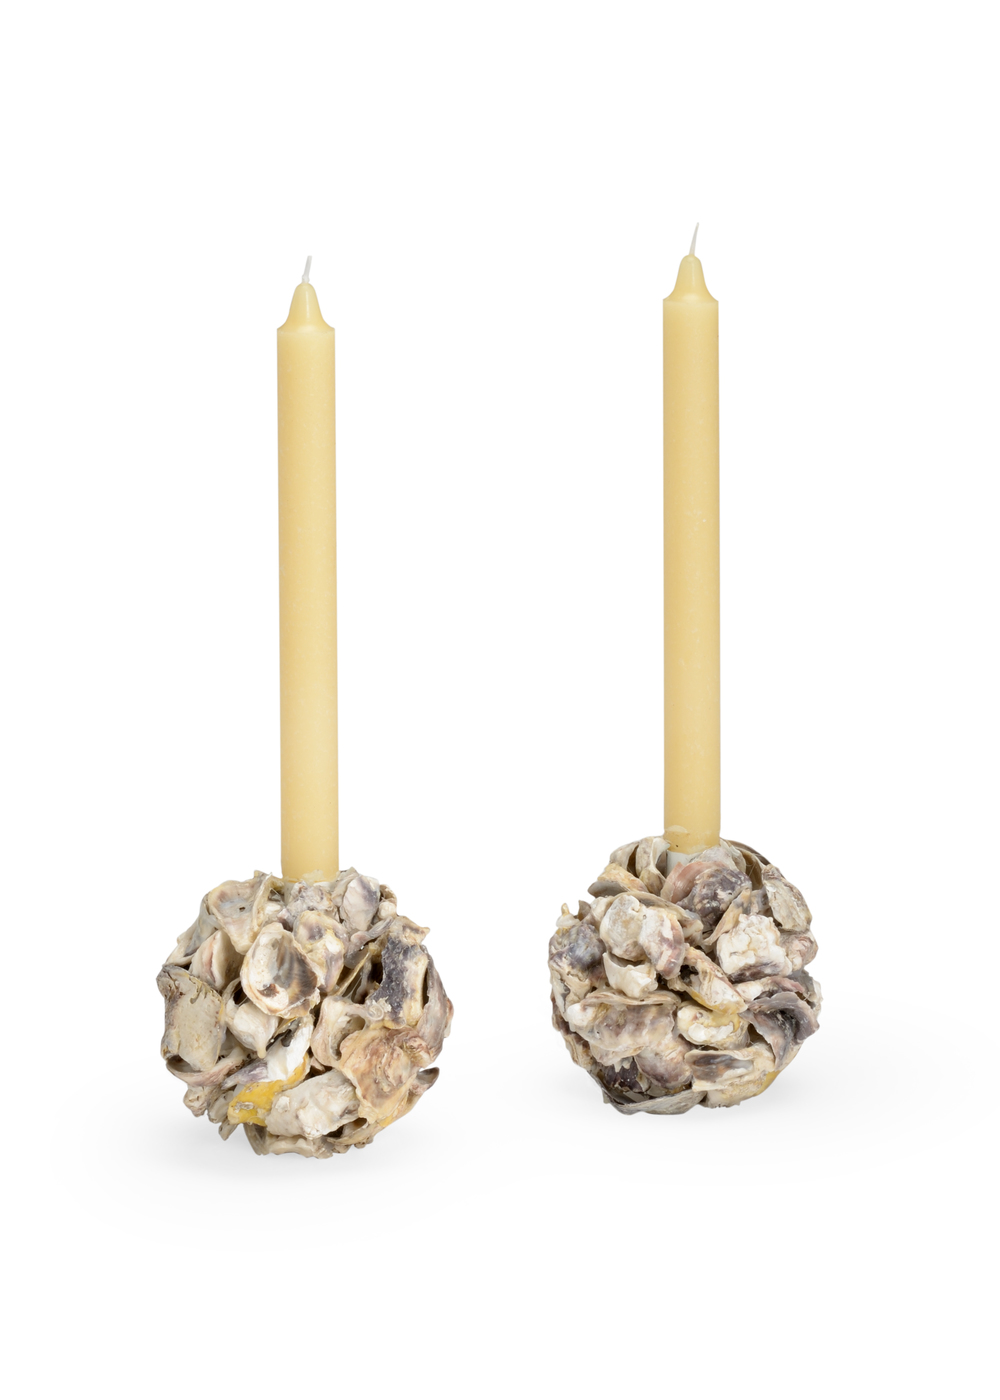 Chelsea House - Oyster Shell Candle Holder, Pair